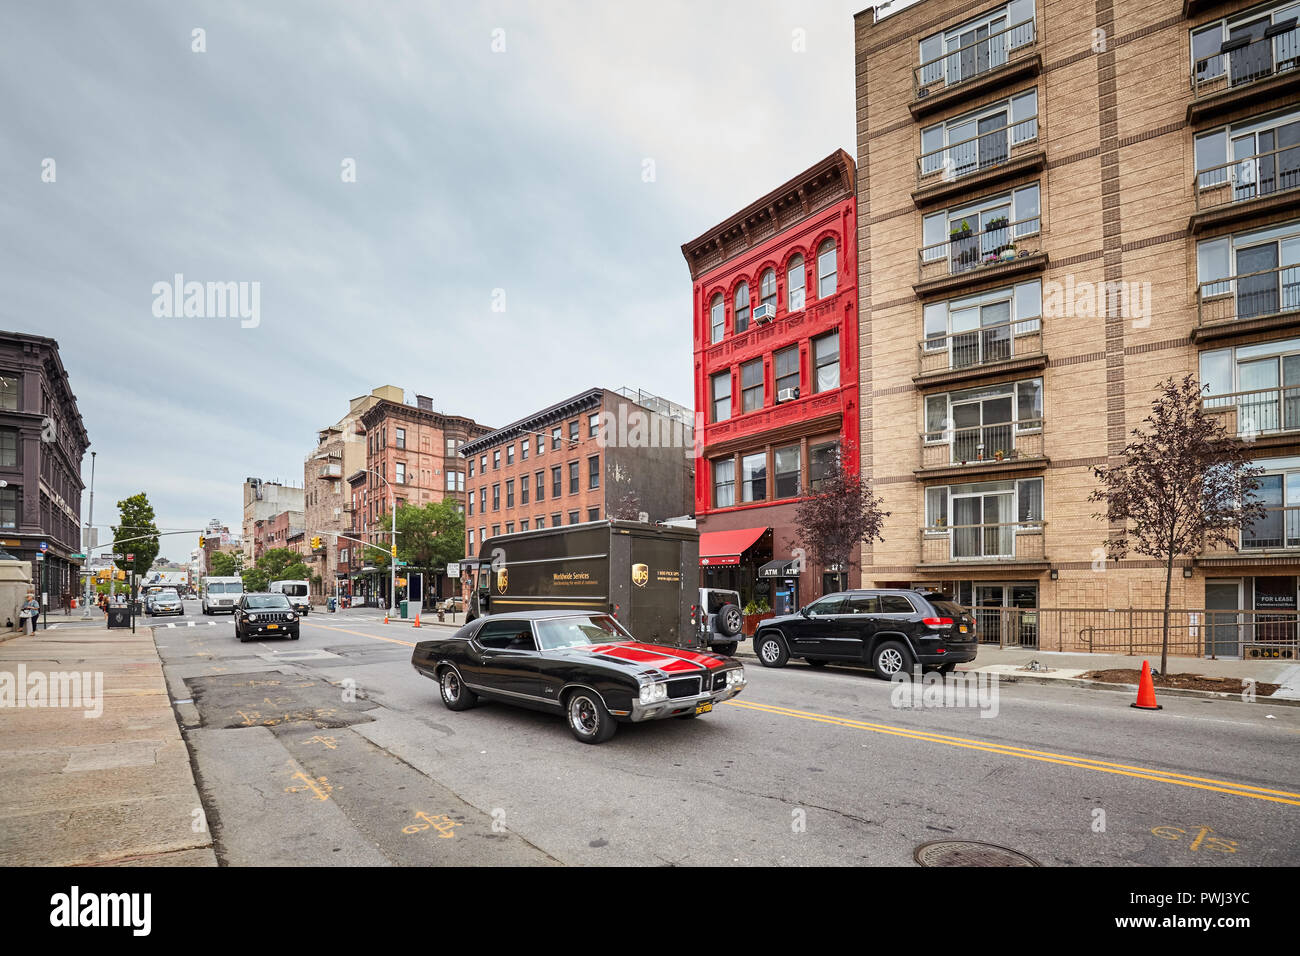 New York City, USA - July 06, 2018: Broadway Street in Williamsburg, one of Brooklyn boroughs. - Stock Image